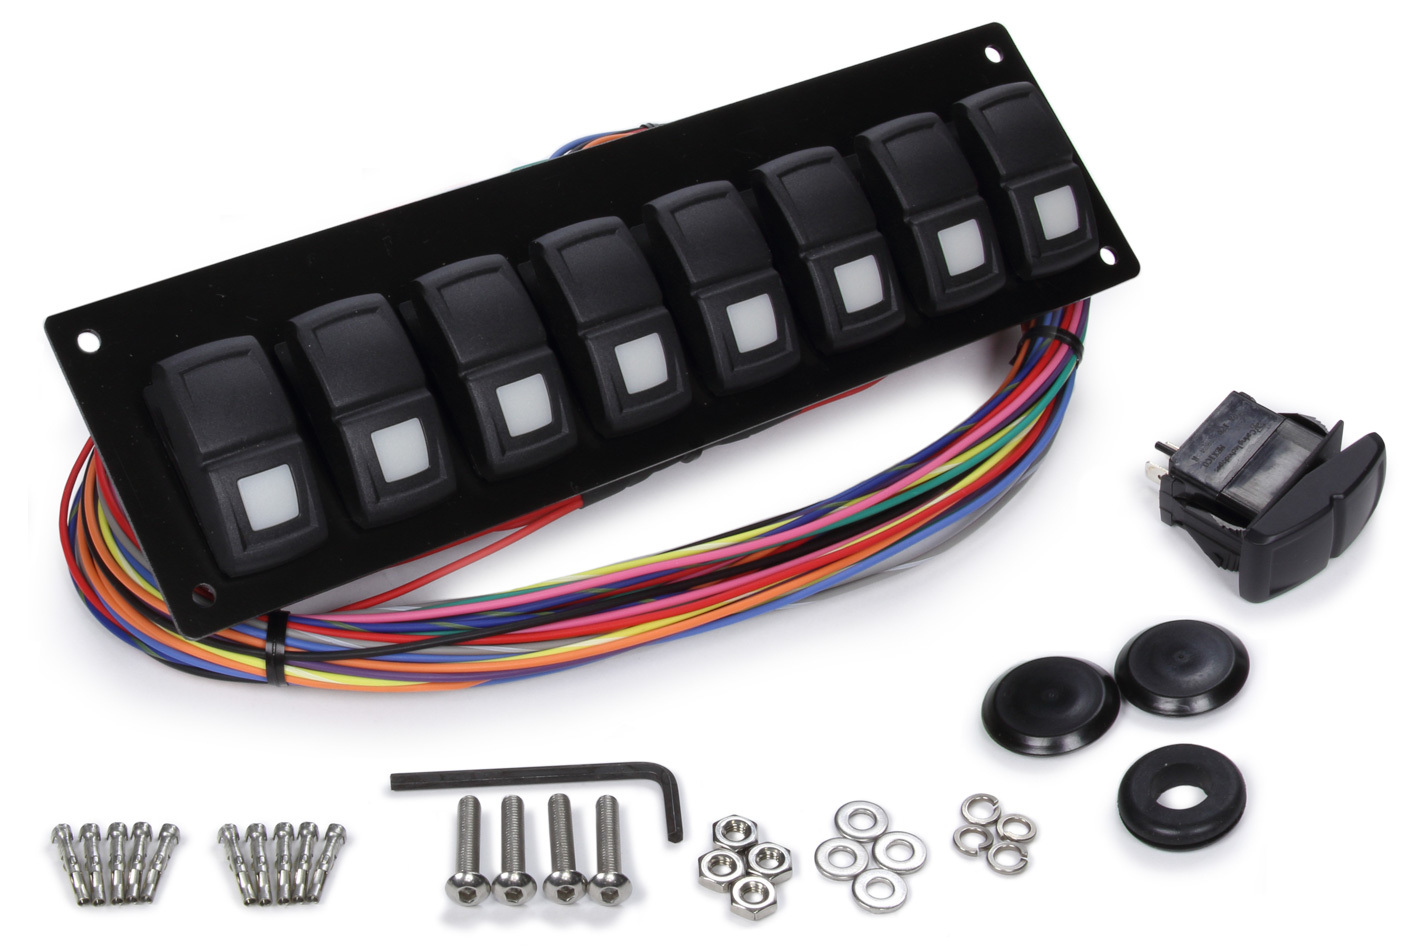 Painless Wiring 58101 Switch Panel, Track Rocker, Dash Mount, 8 Rockers, Installation Hardware / Wiring Harness Included, Indicator Lights, Black, Painless Track Rocker System, Kit